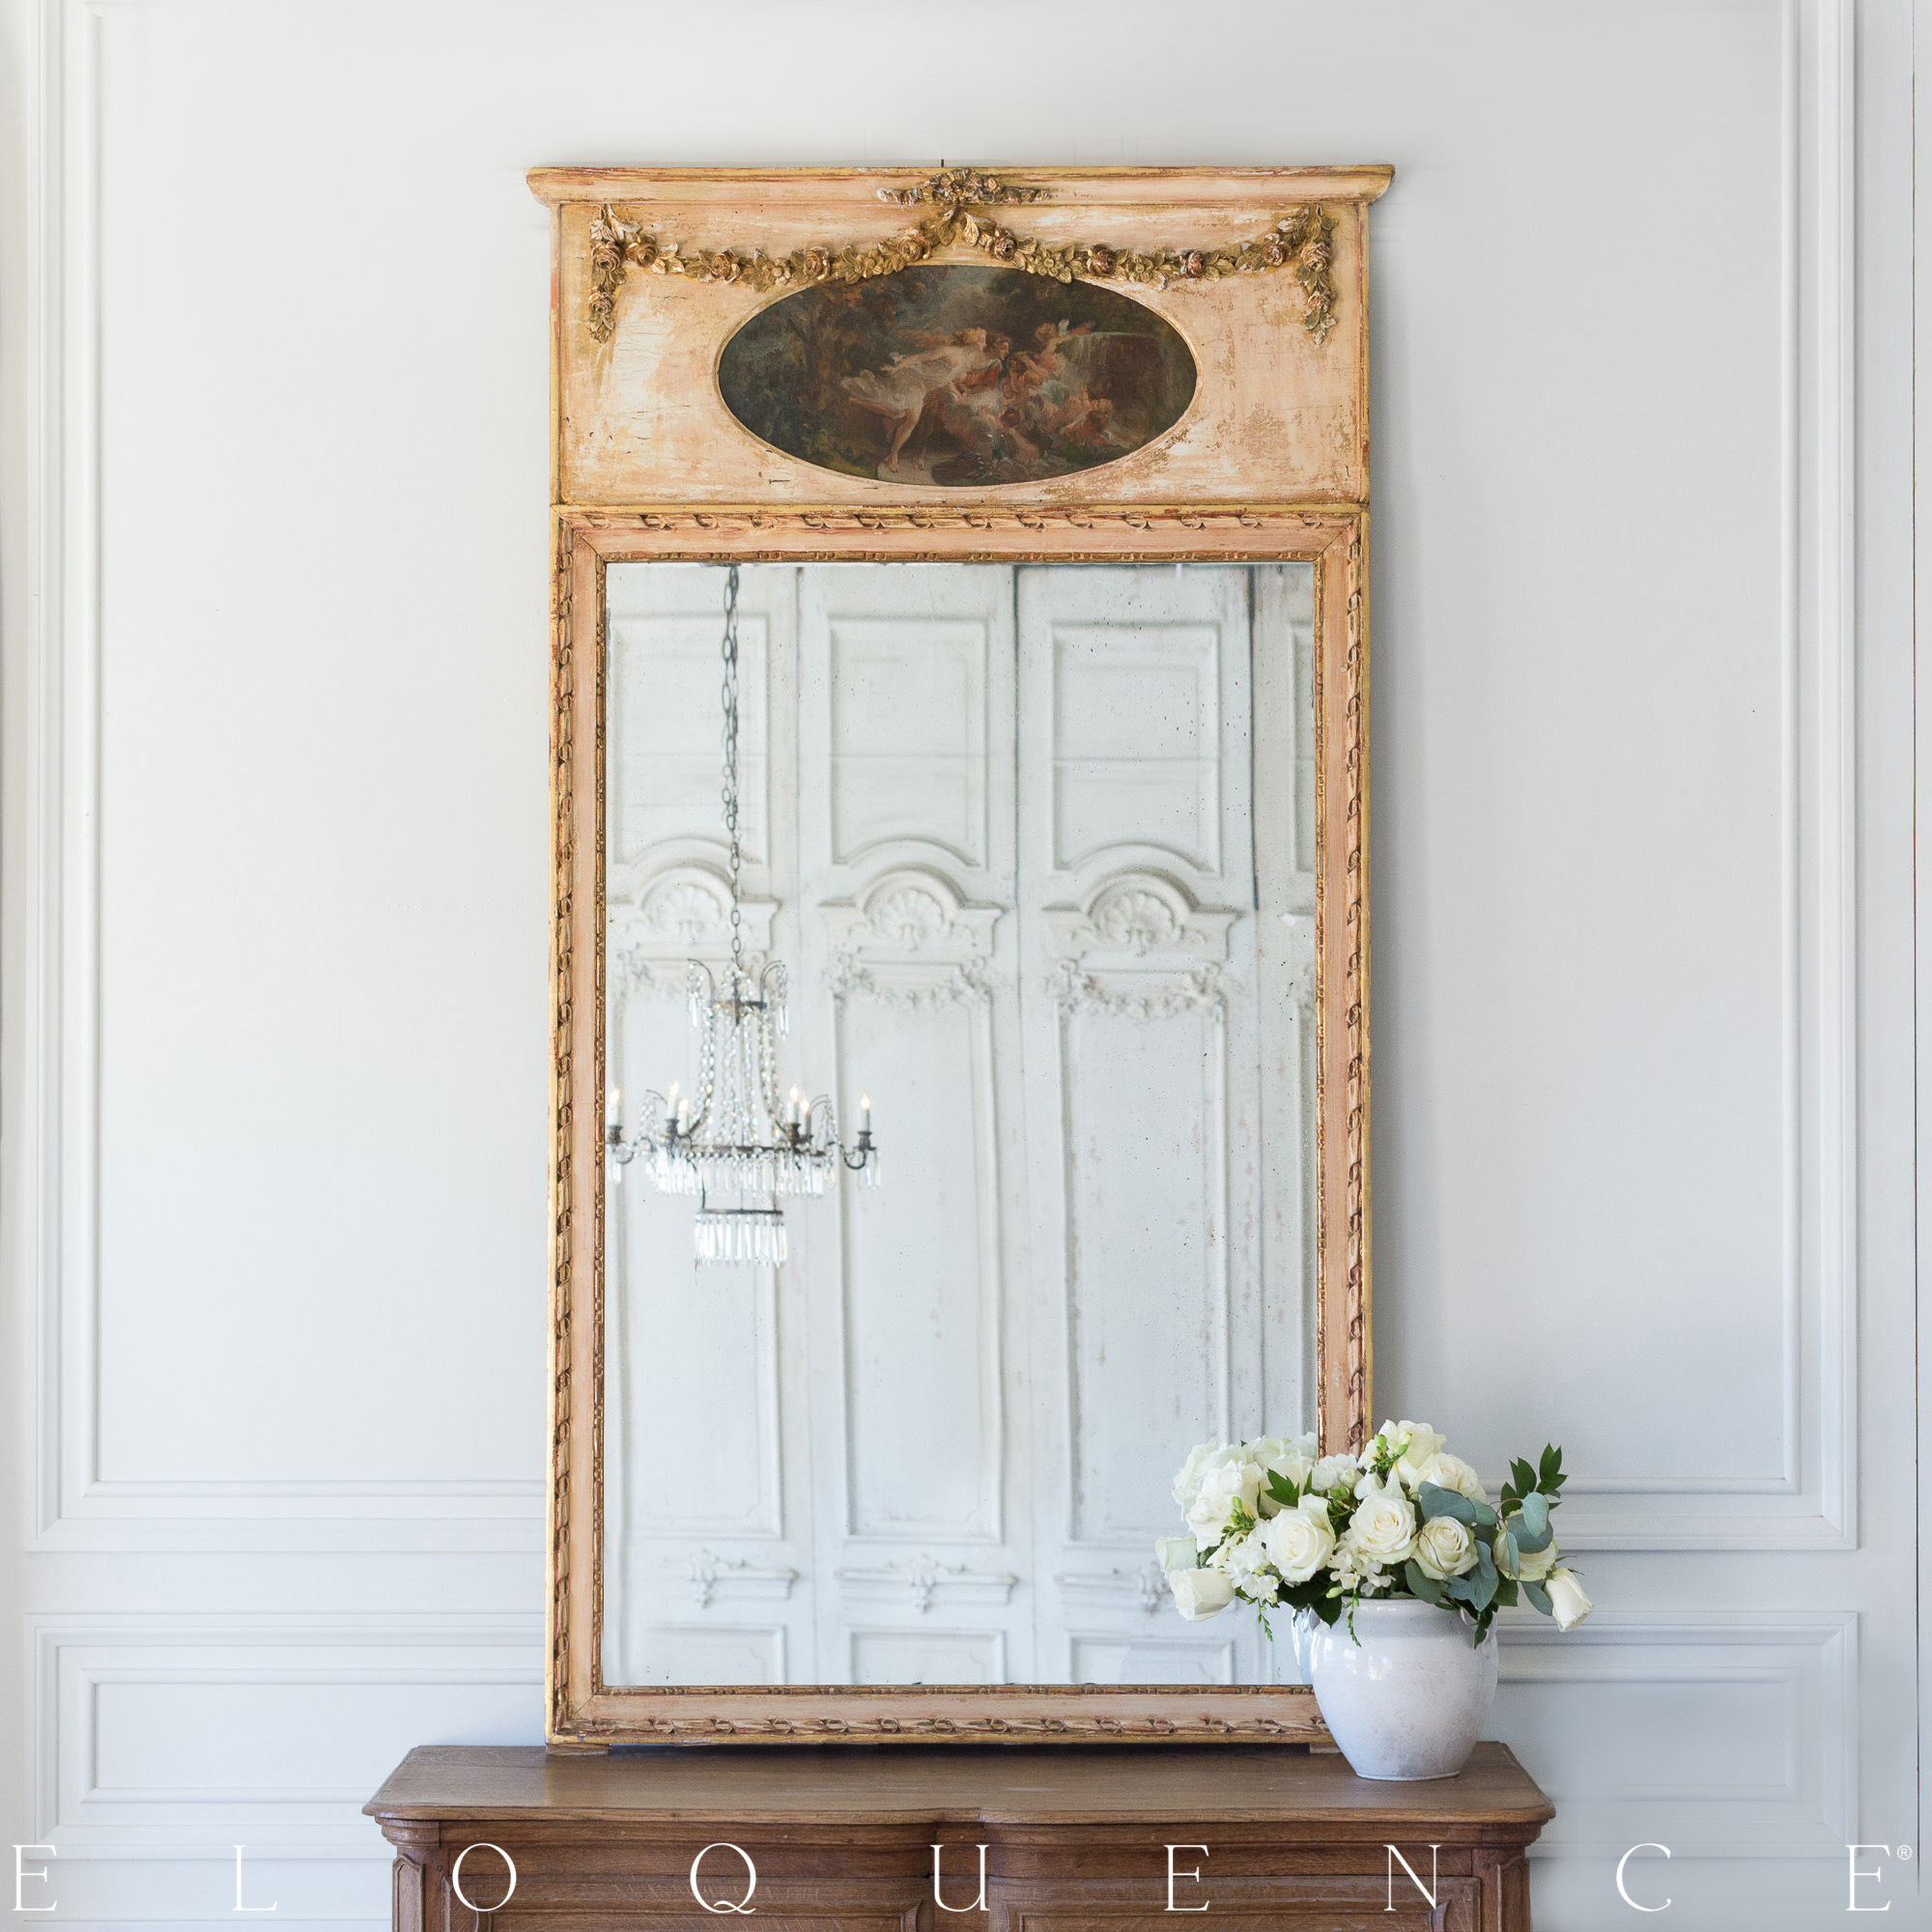 Eloquence French Country Style Antique Trumeau Mirror 1850